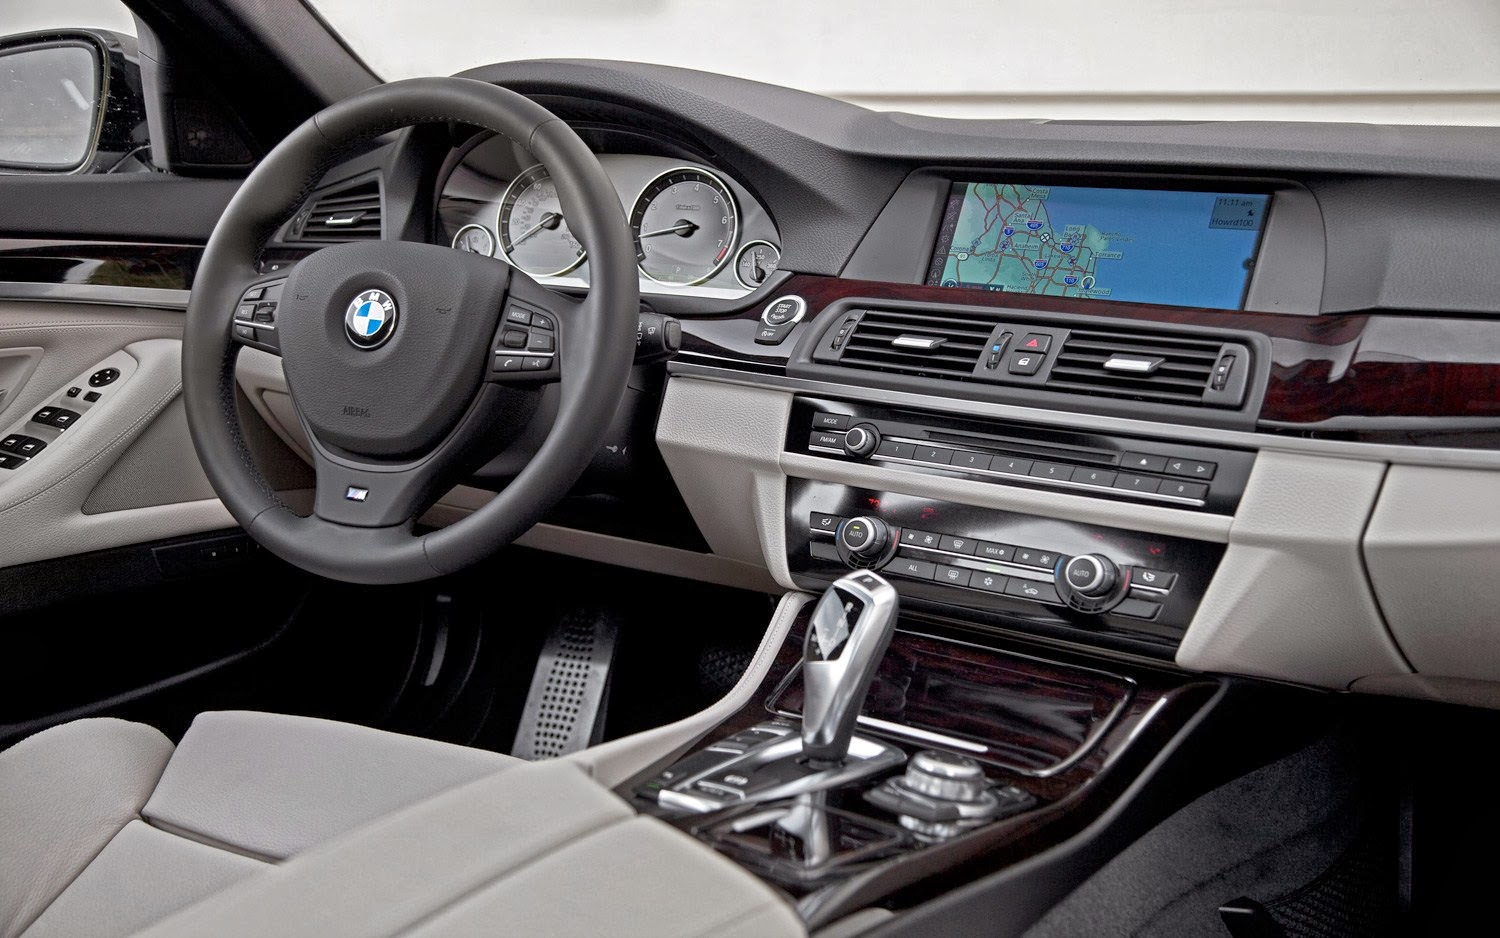 BMW I Car Prices Photos Prices Information Wallpapers - 535i bmw price